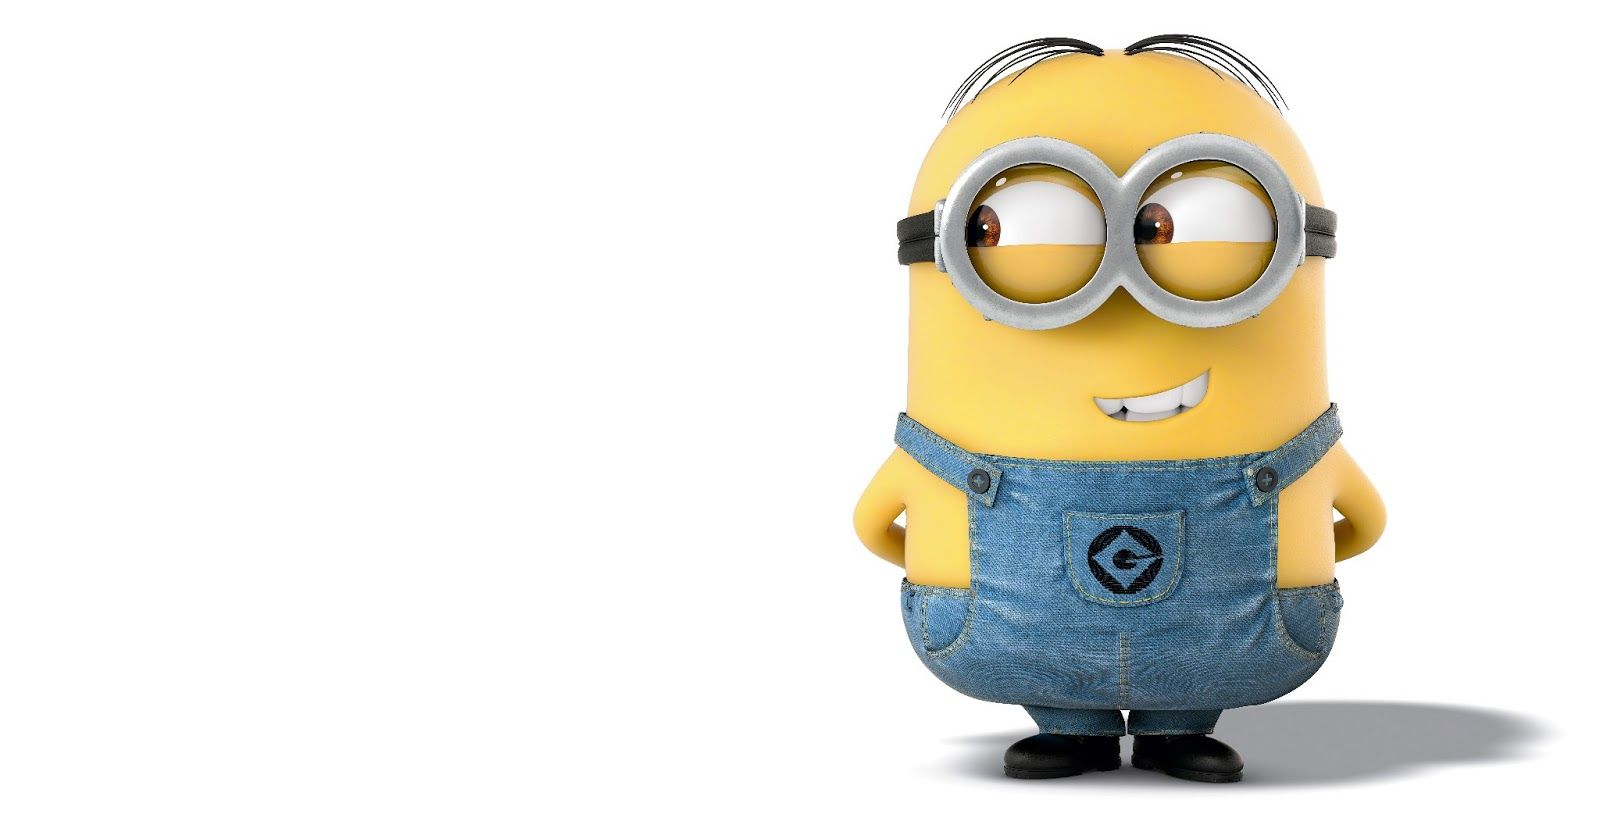 Despicable Me Minion Wallpapers Group × Minion Wallpapers